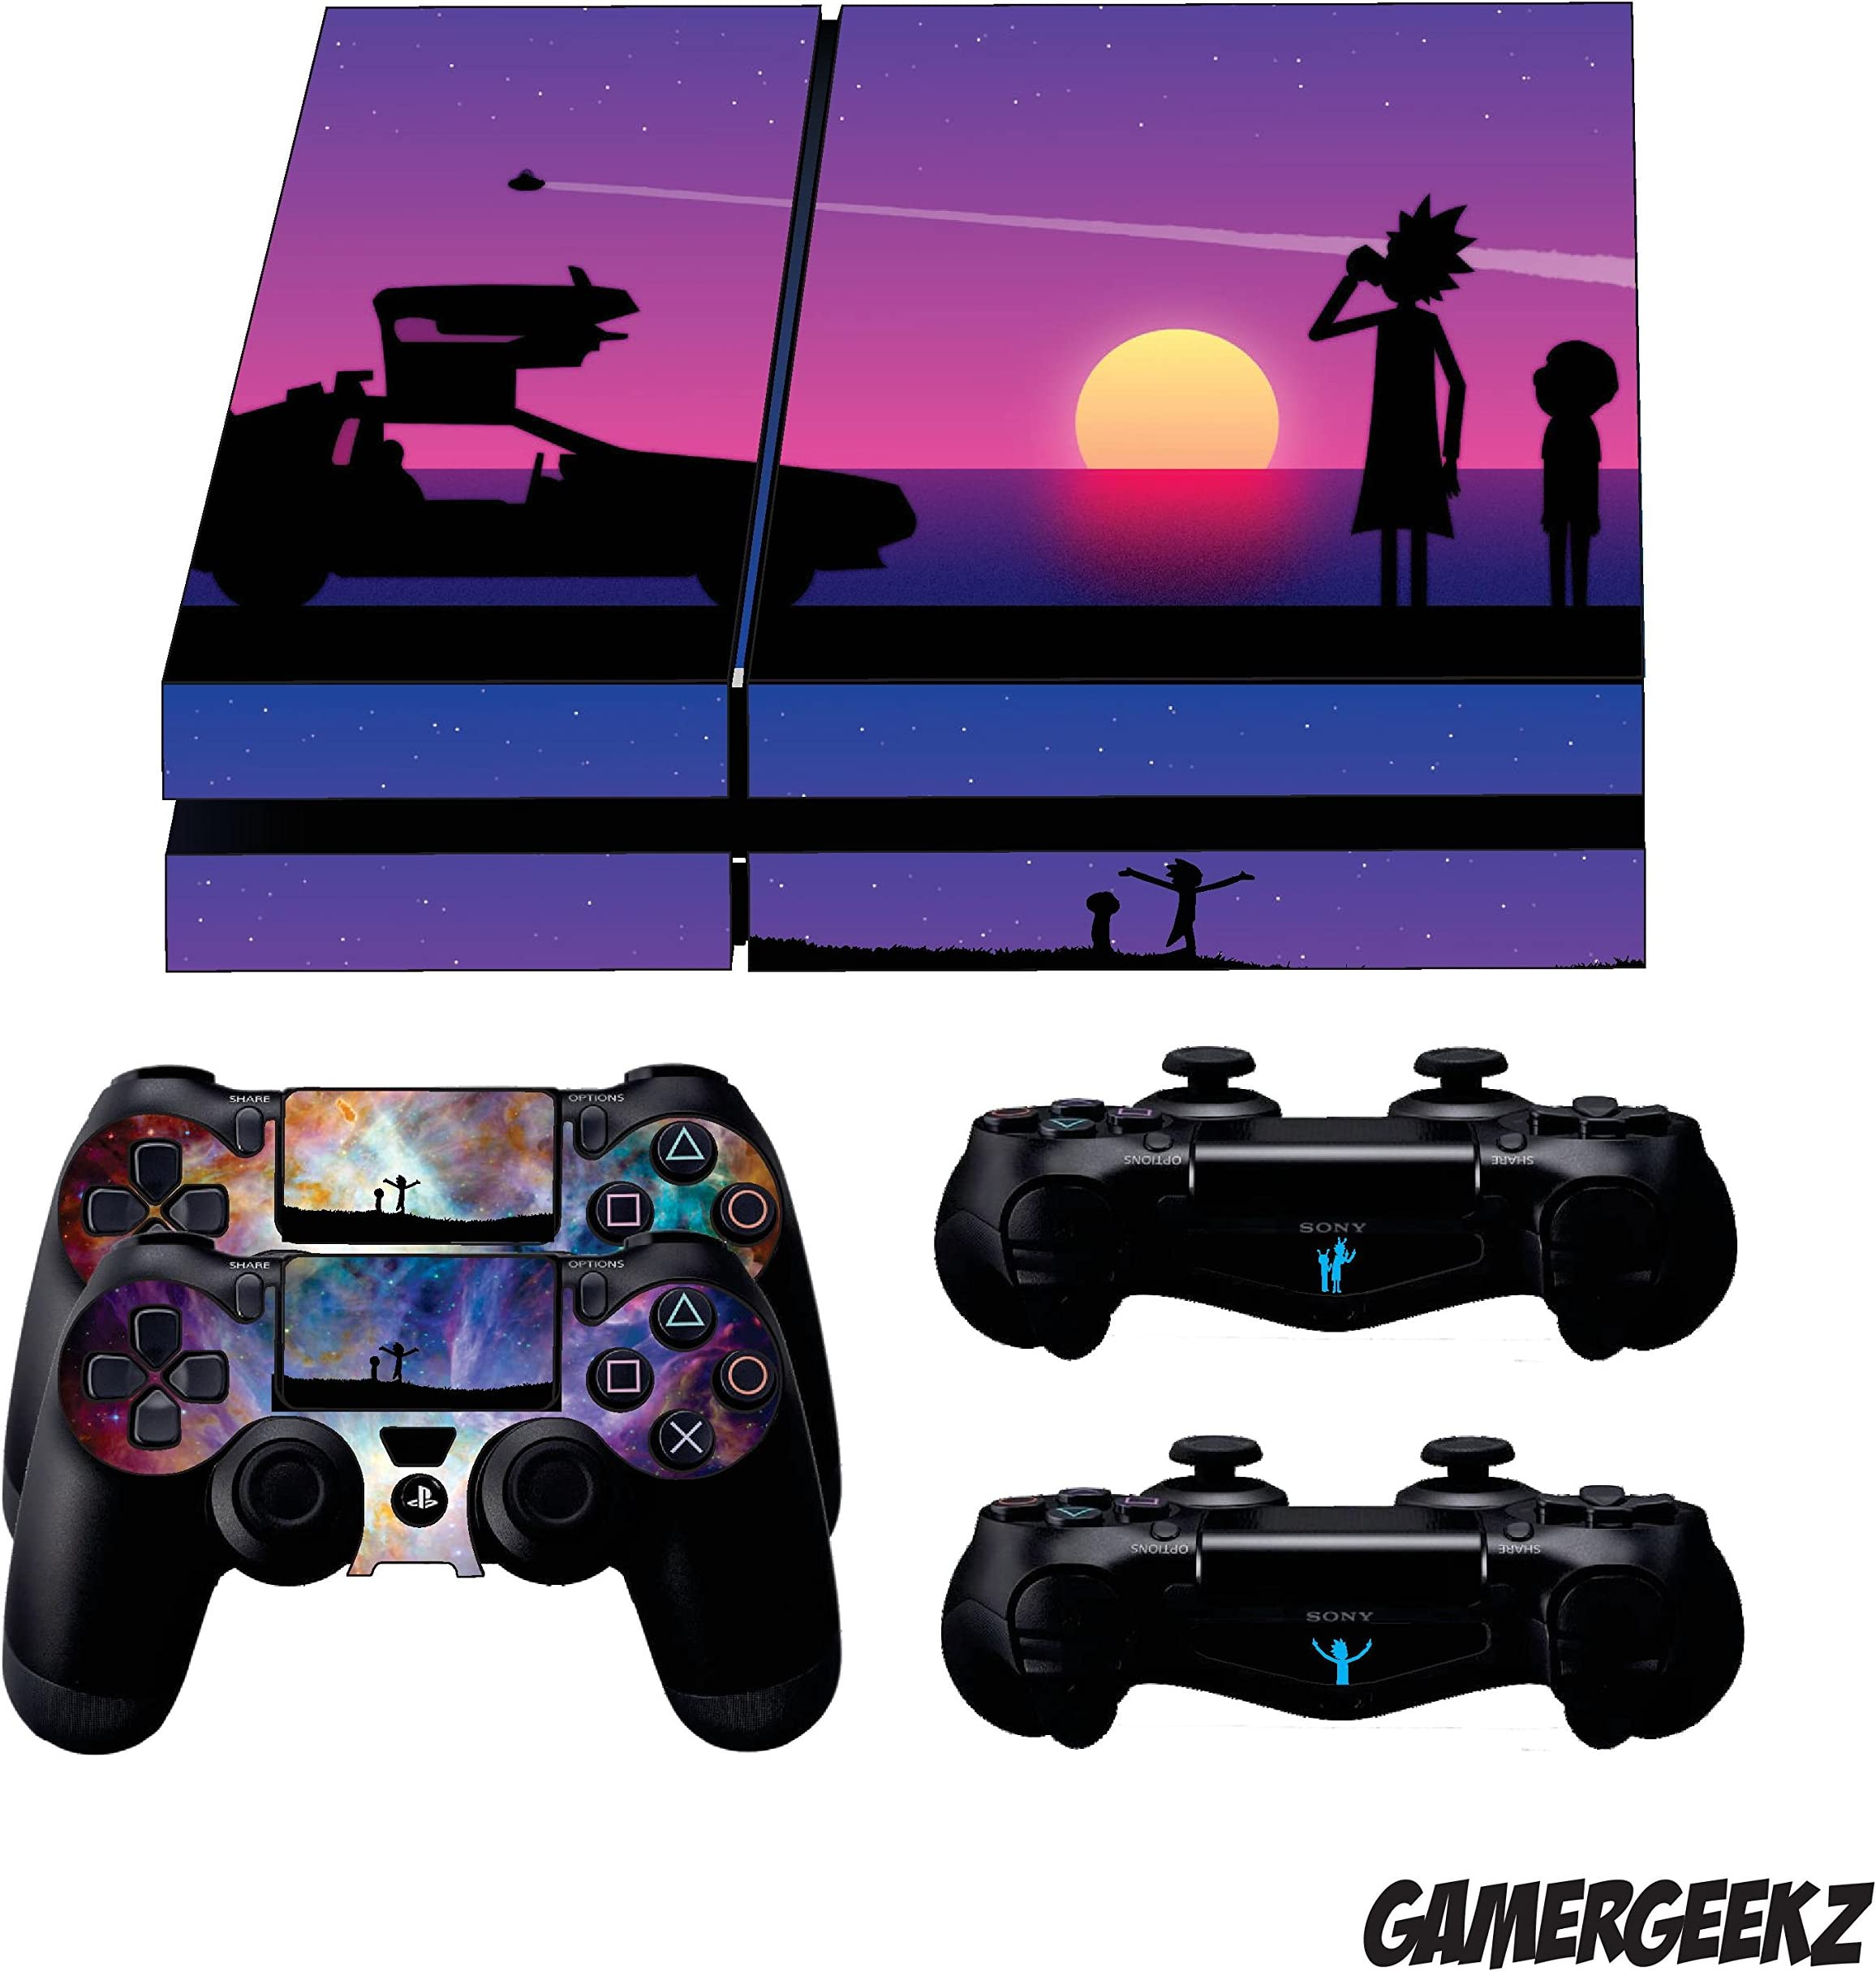 Rick And Morty Ps4 Skin For Playstation 4 Console And Controllers Video Game Accessories Faceplates, Decals & Stickers